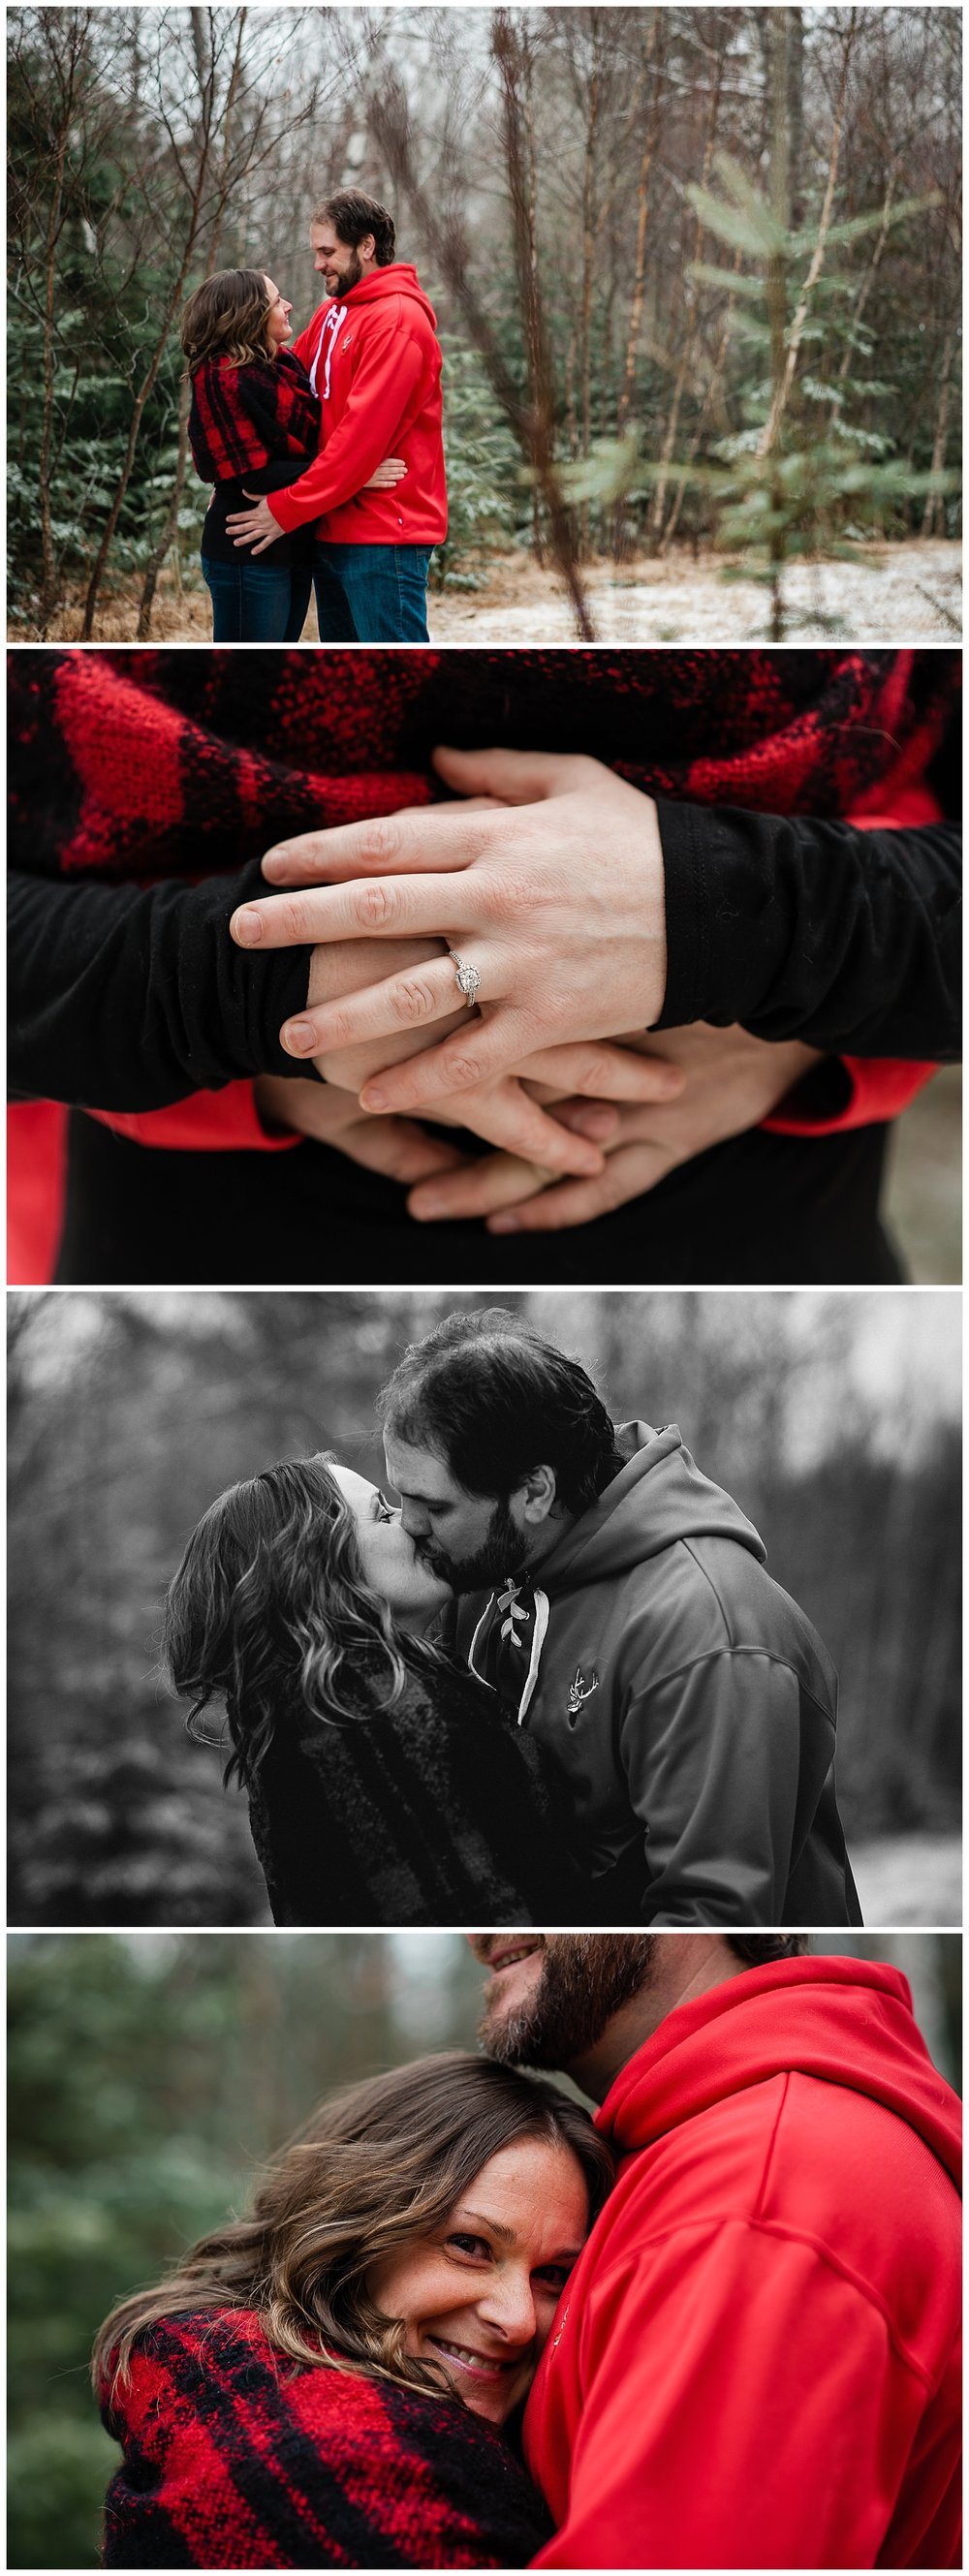 Anne & Brookes - Winter Engagement Session